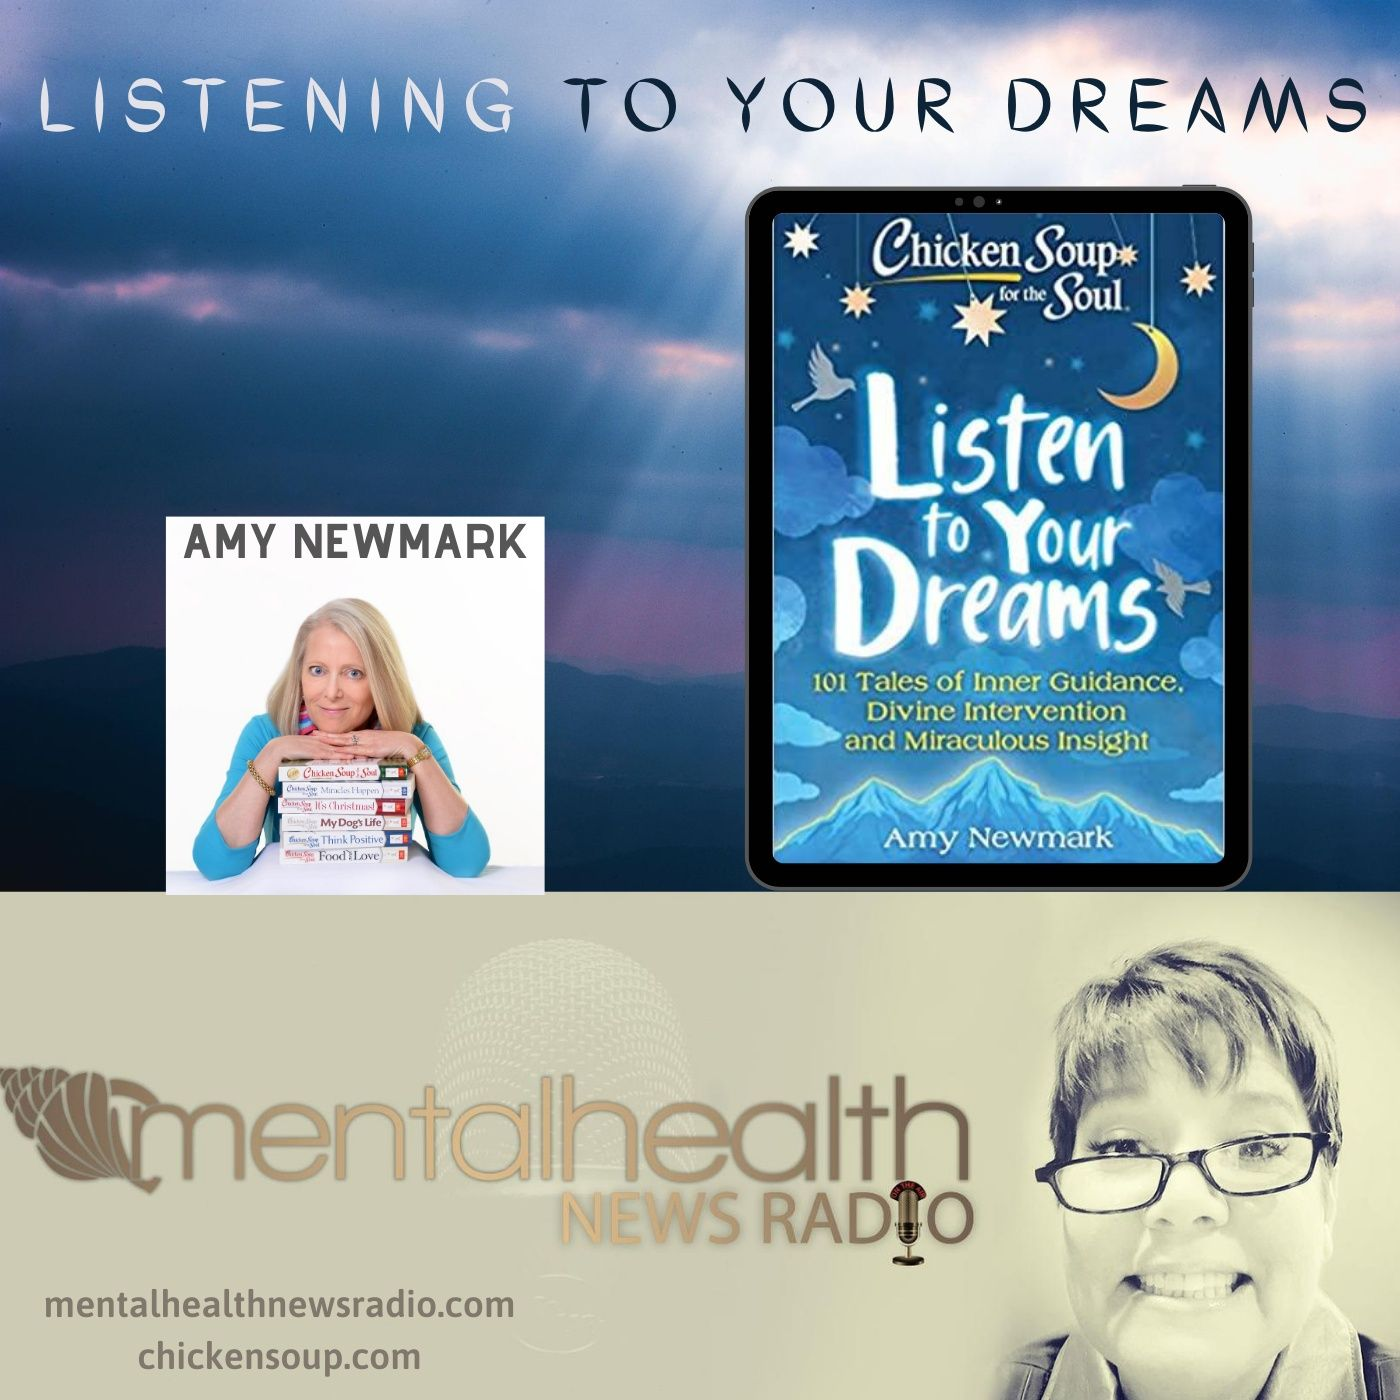 Mental Health News Radio - Listening to Your Dreams with Amy Newmark